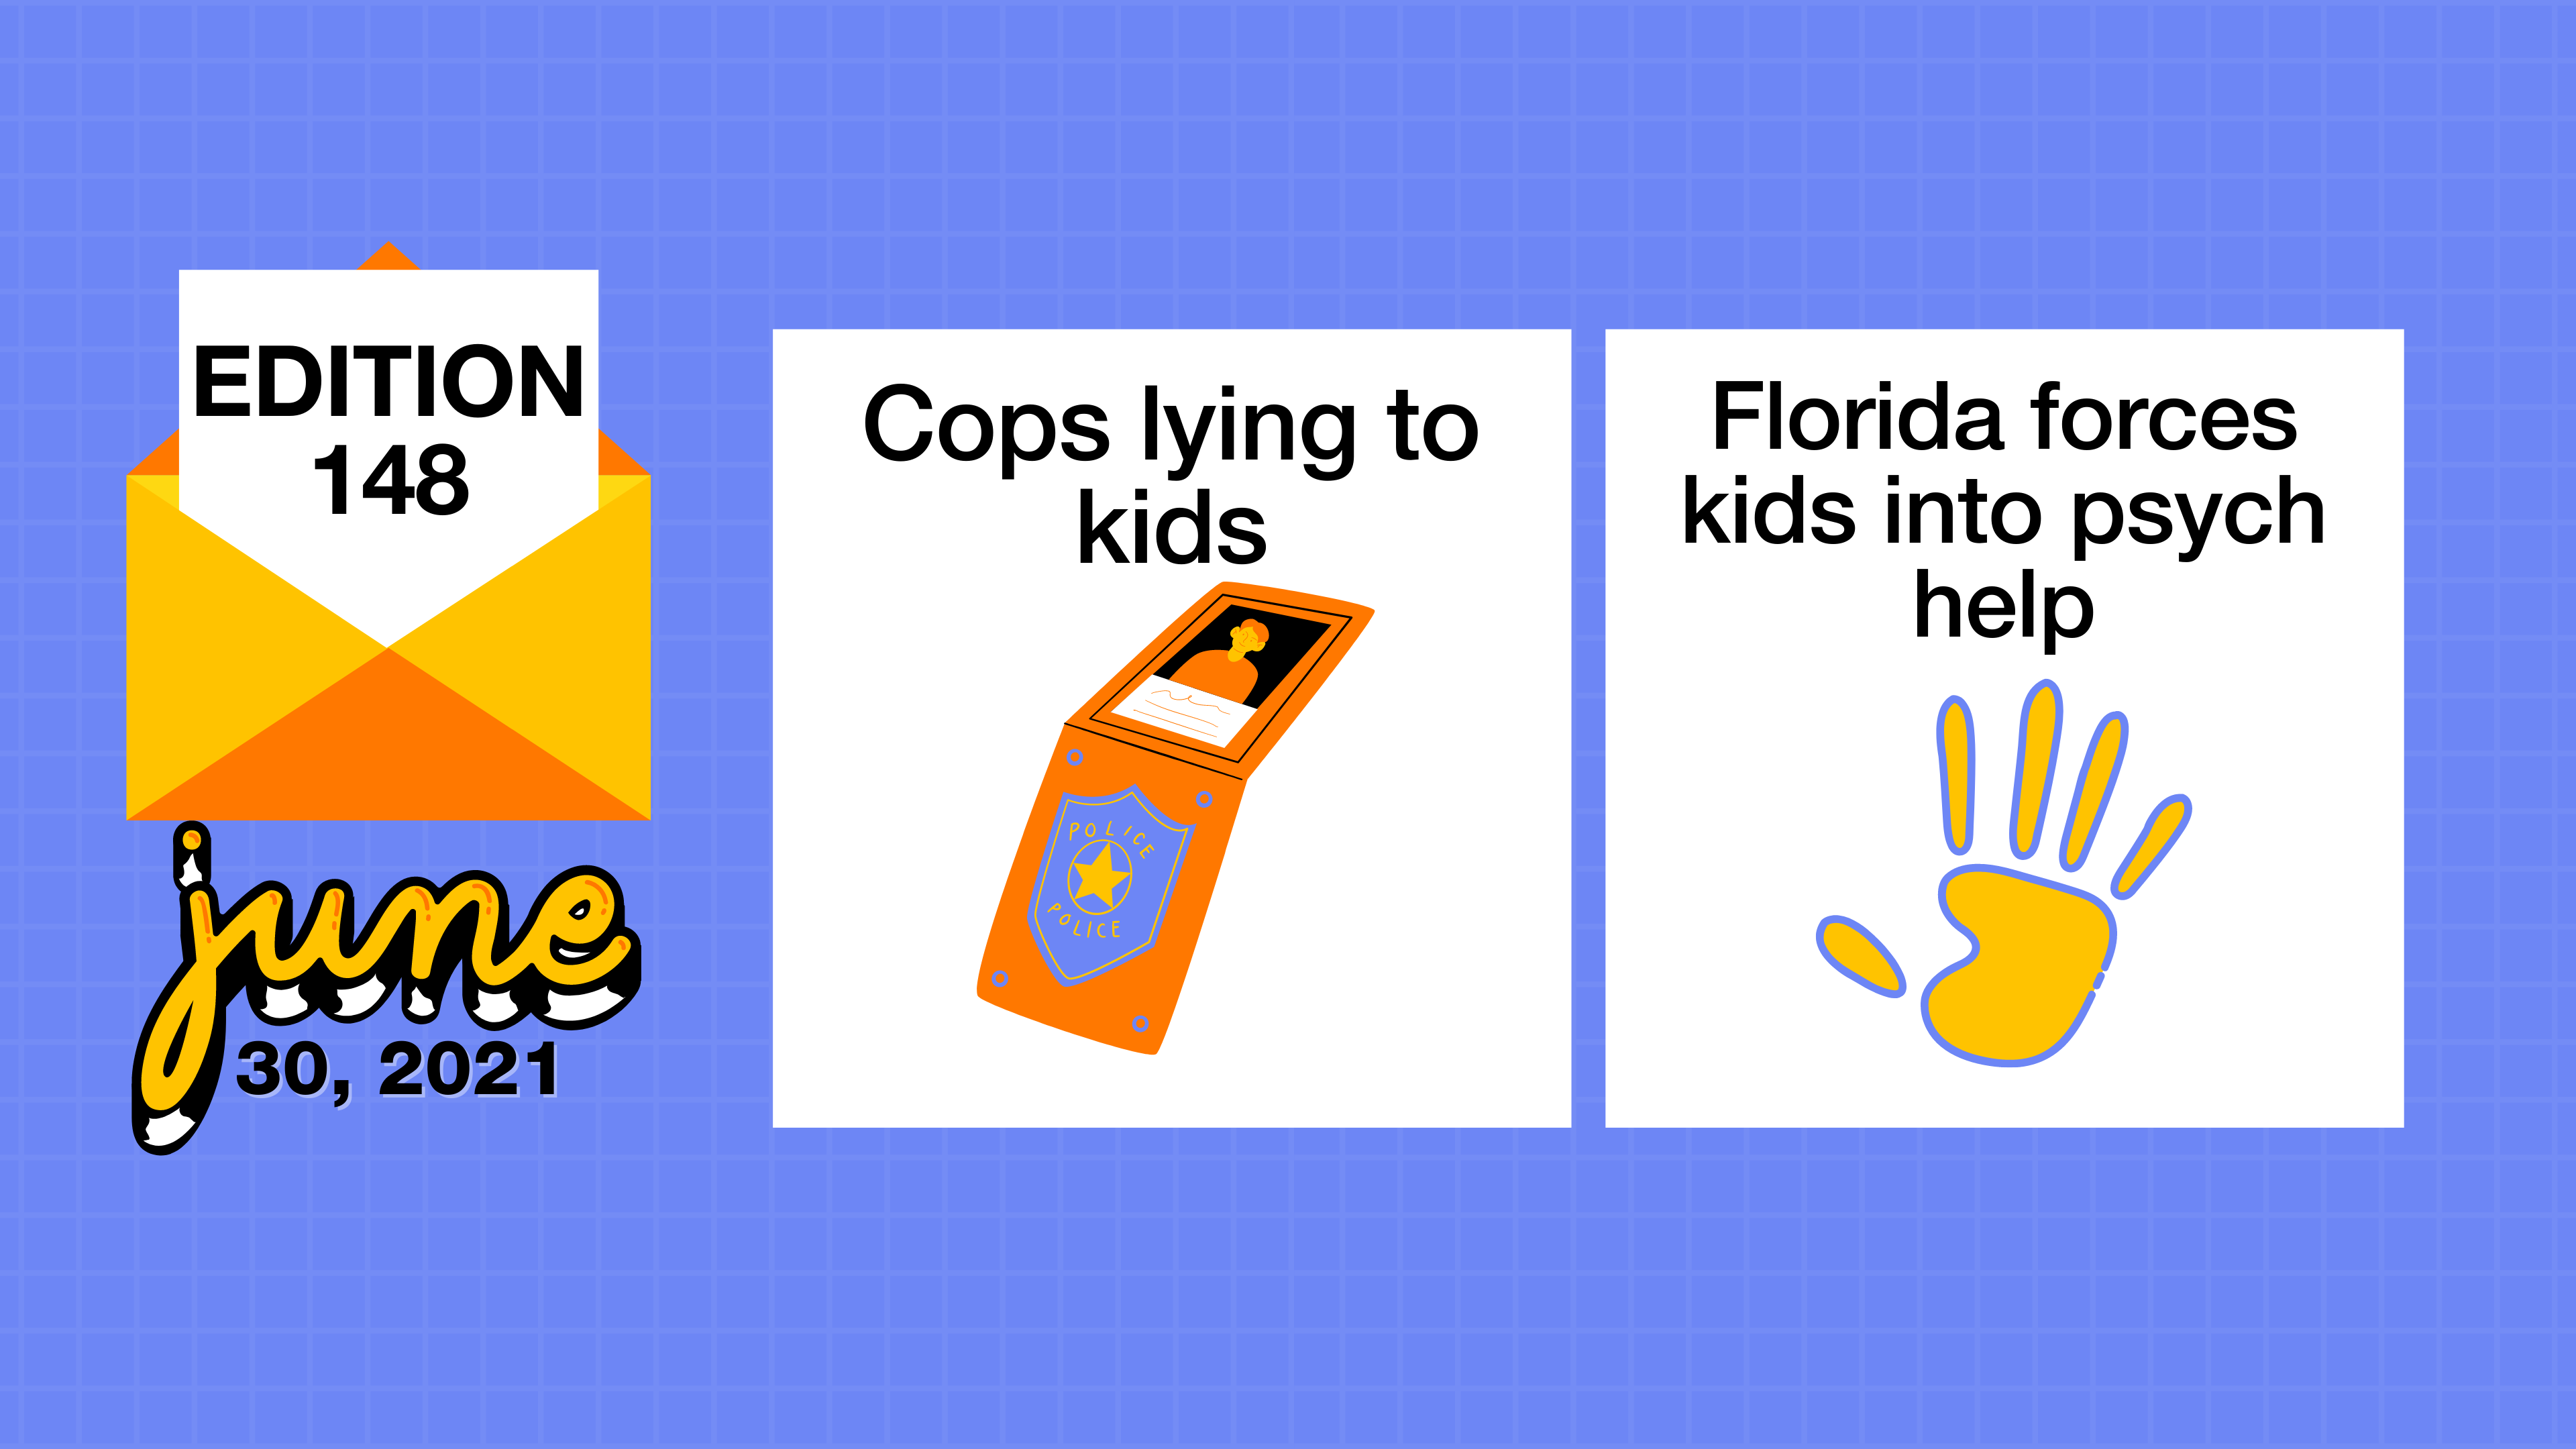 Cops lying to kids and Florida forces kids into psych help